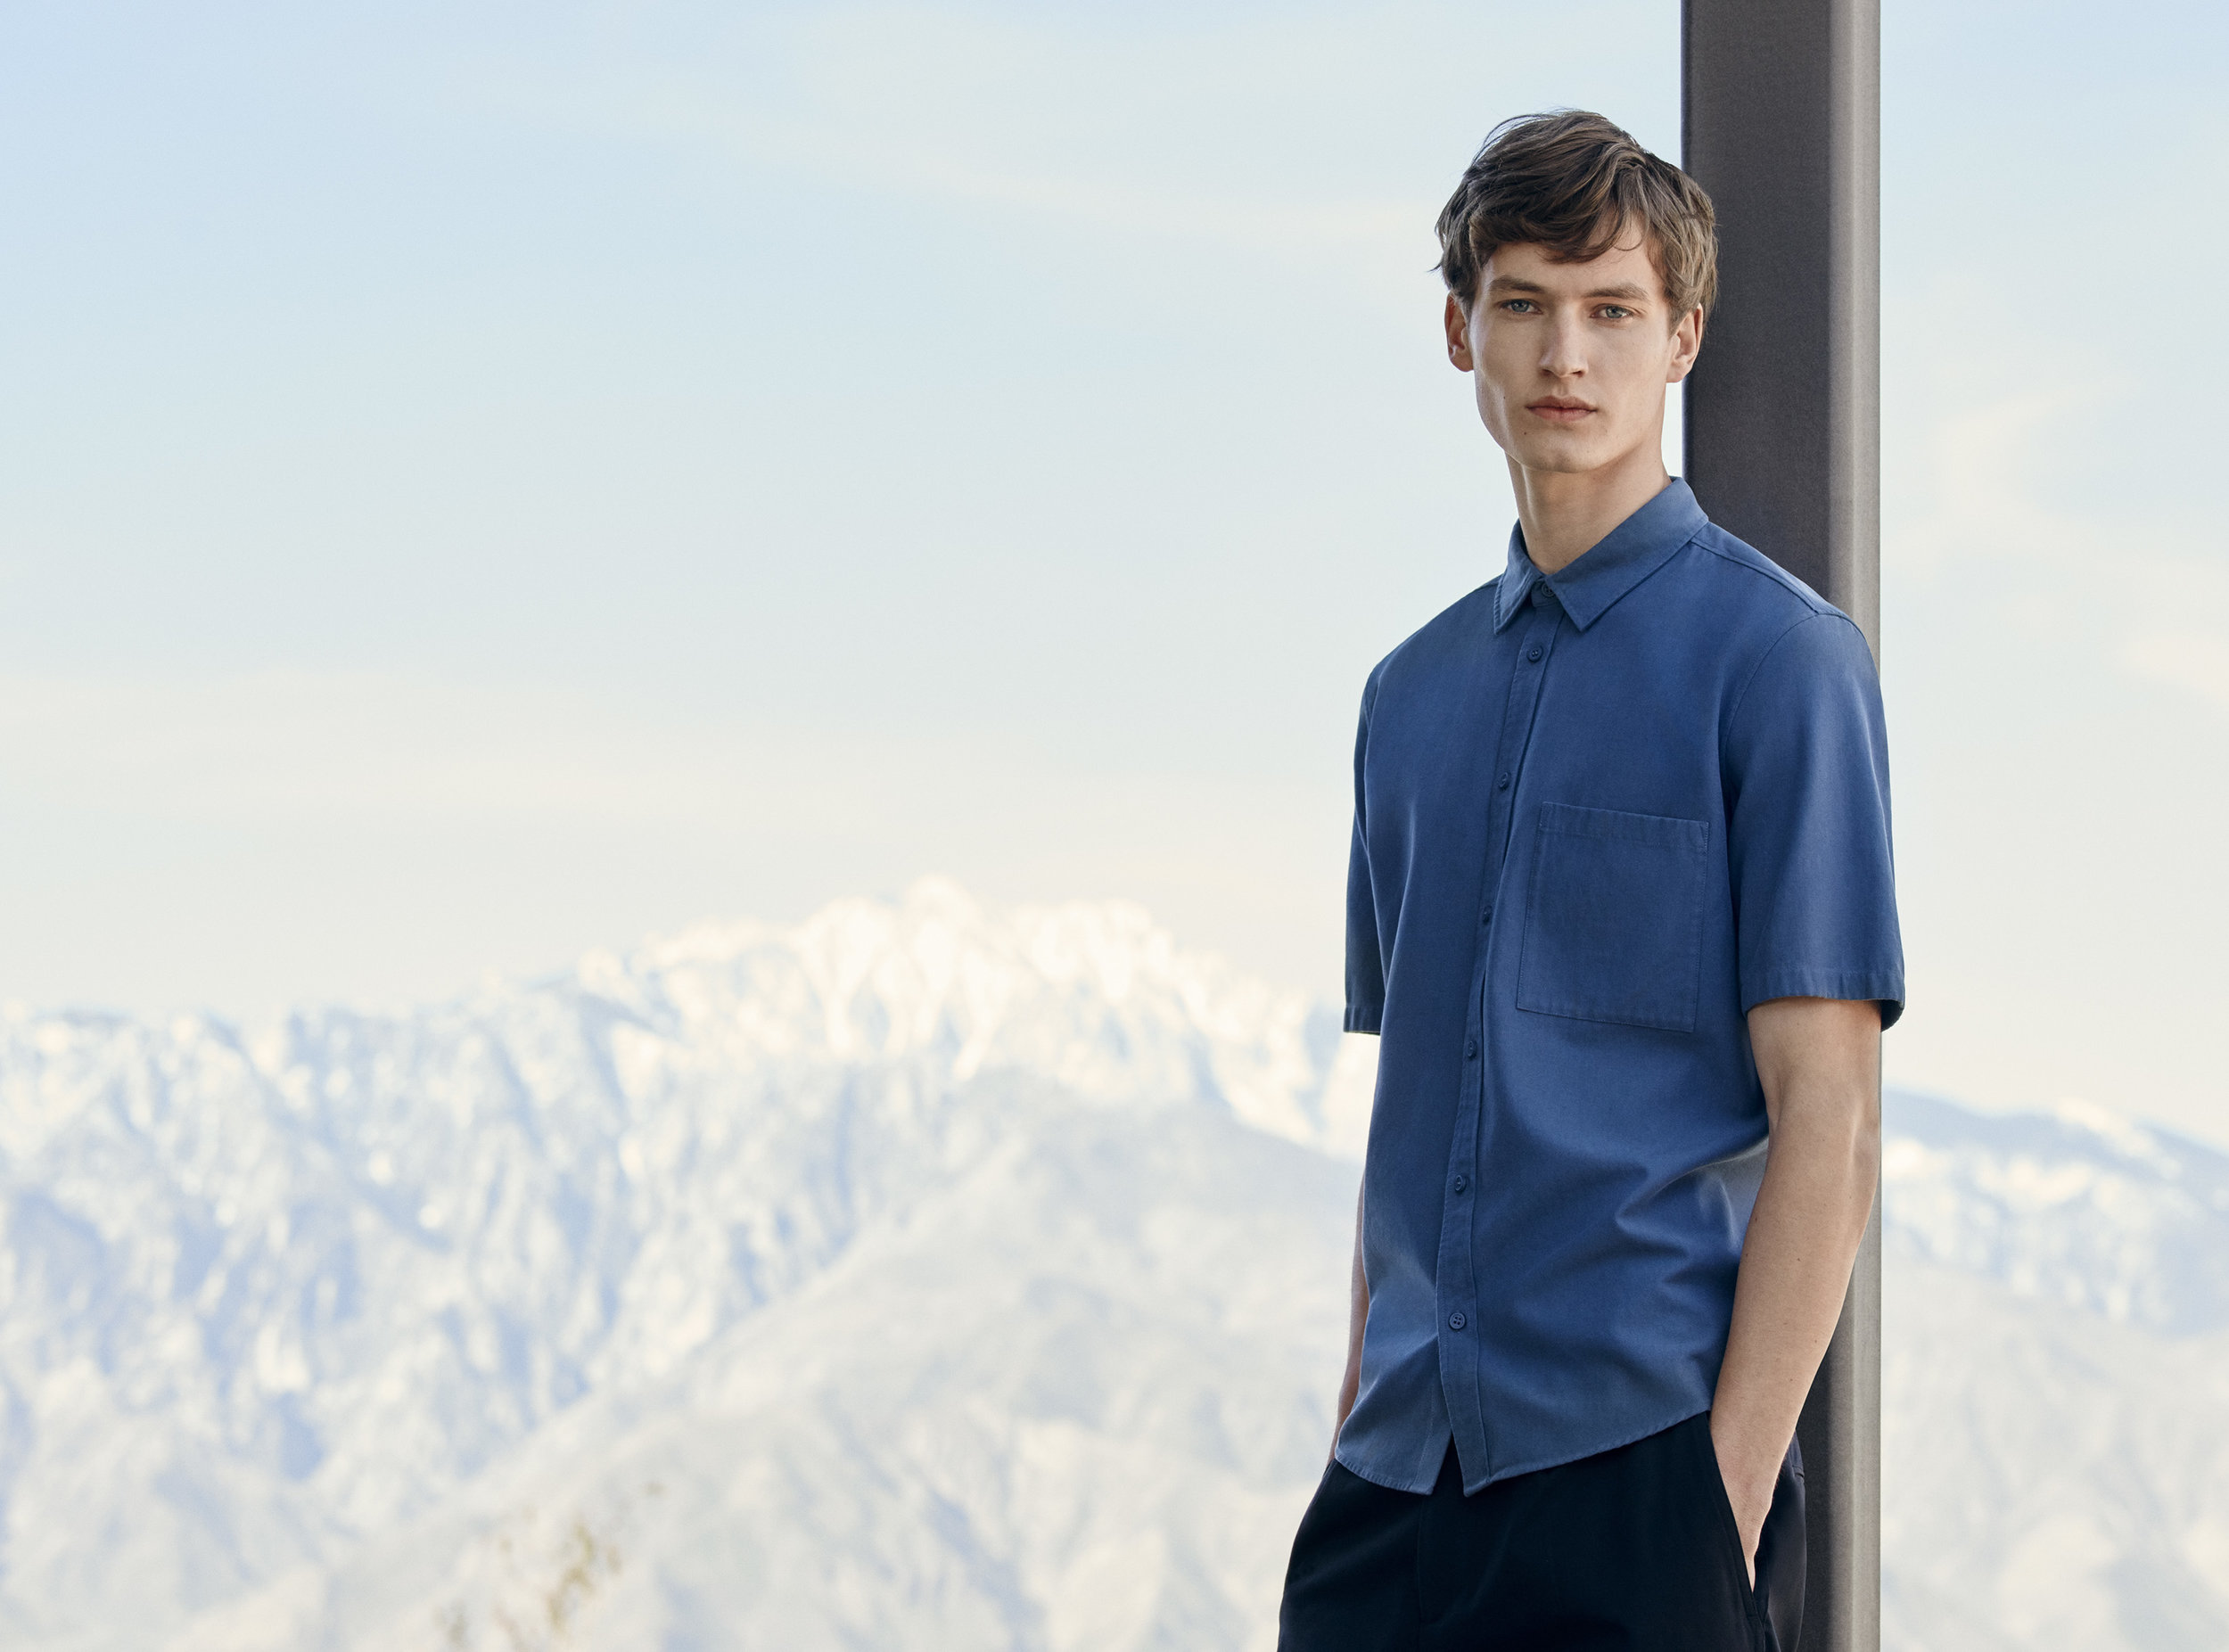 Short-sleeve twill shirt (59€) ++ Relaxed chino trousers (69€)